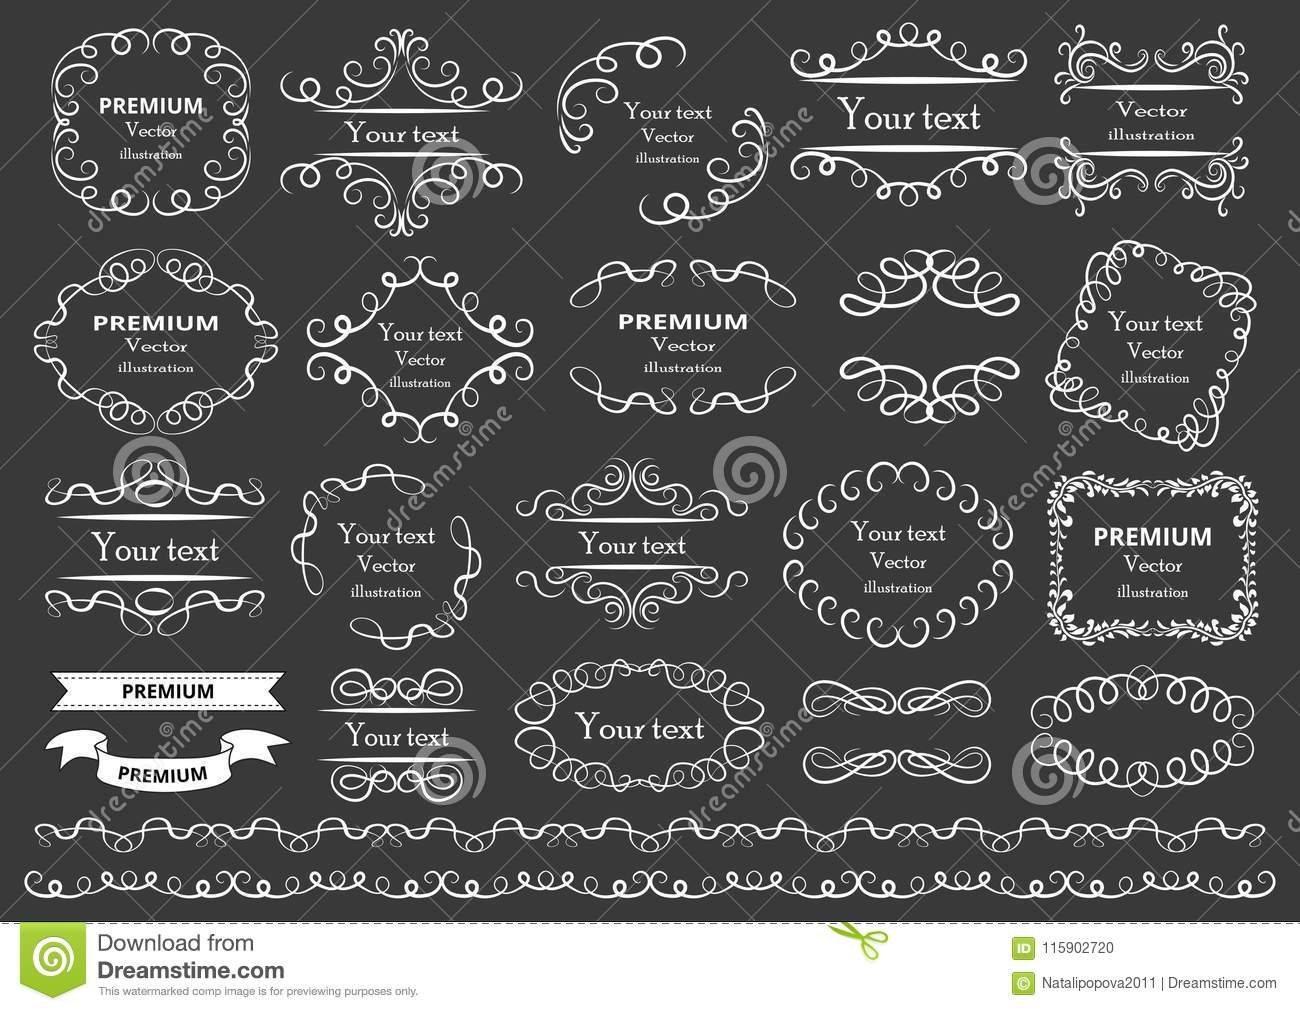 Calligraphic design elements . Decorative swirls or scrolls, vintage frames , flourishes, labels and dividers. Retro vector illust